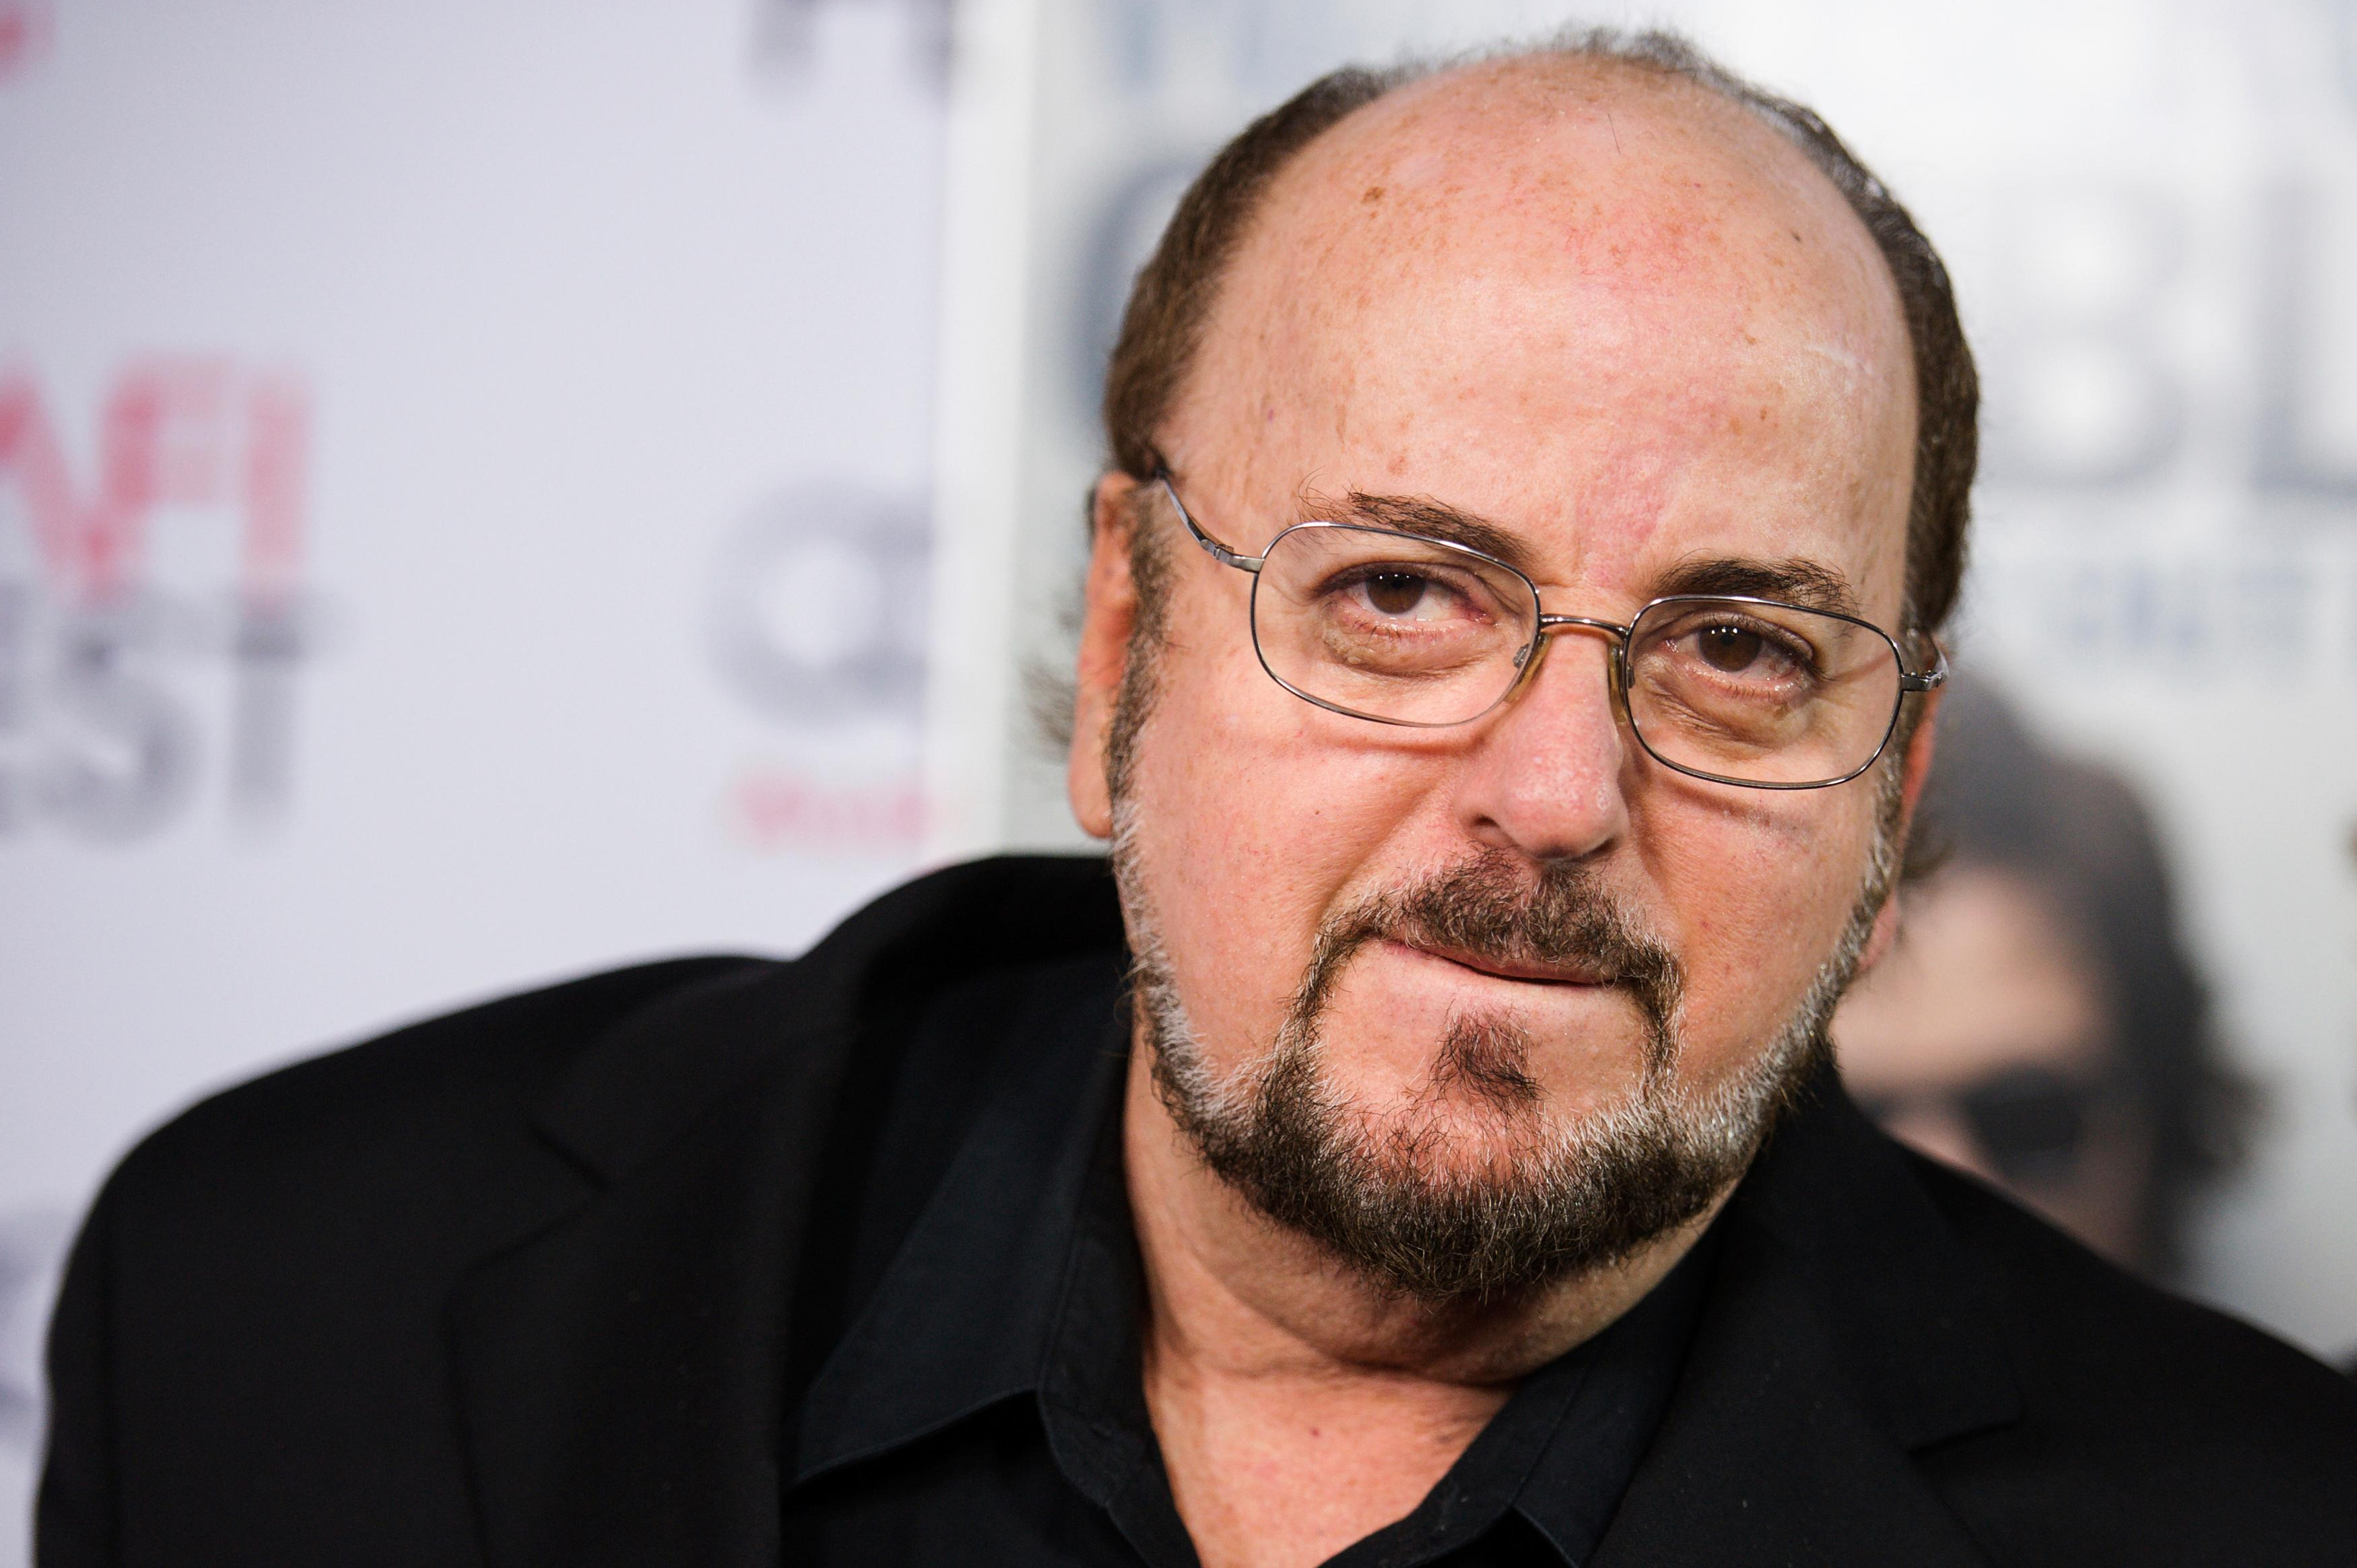 FILE - In this Nov. 10, 2014, file photo, James Toback arrives at the 2014 AFI Fest &quot;The Gambler&quot; in Los Angeles. (Photo by Richard Shotwell/Invision/AP)<p></p>